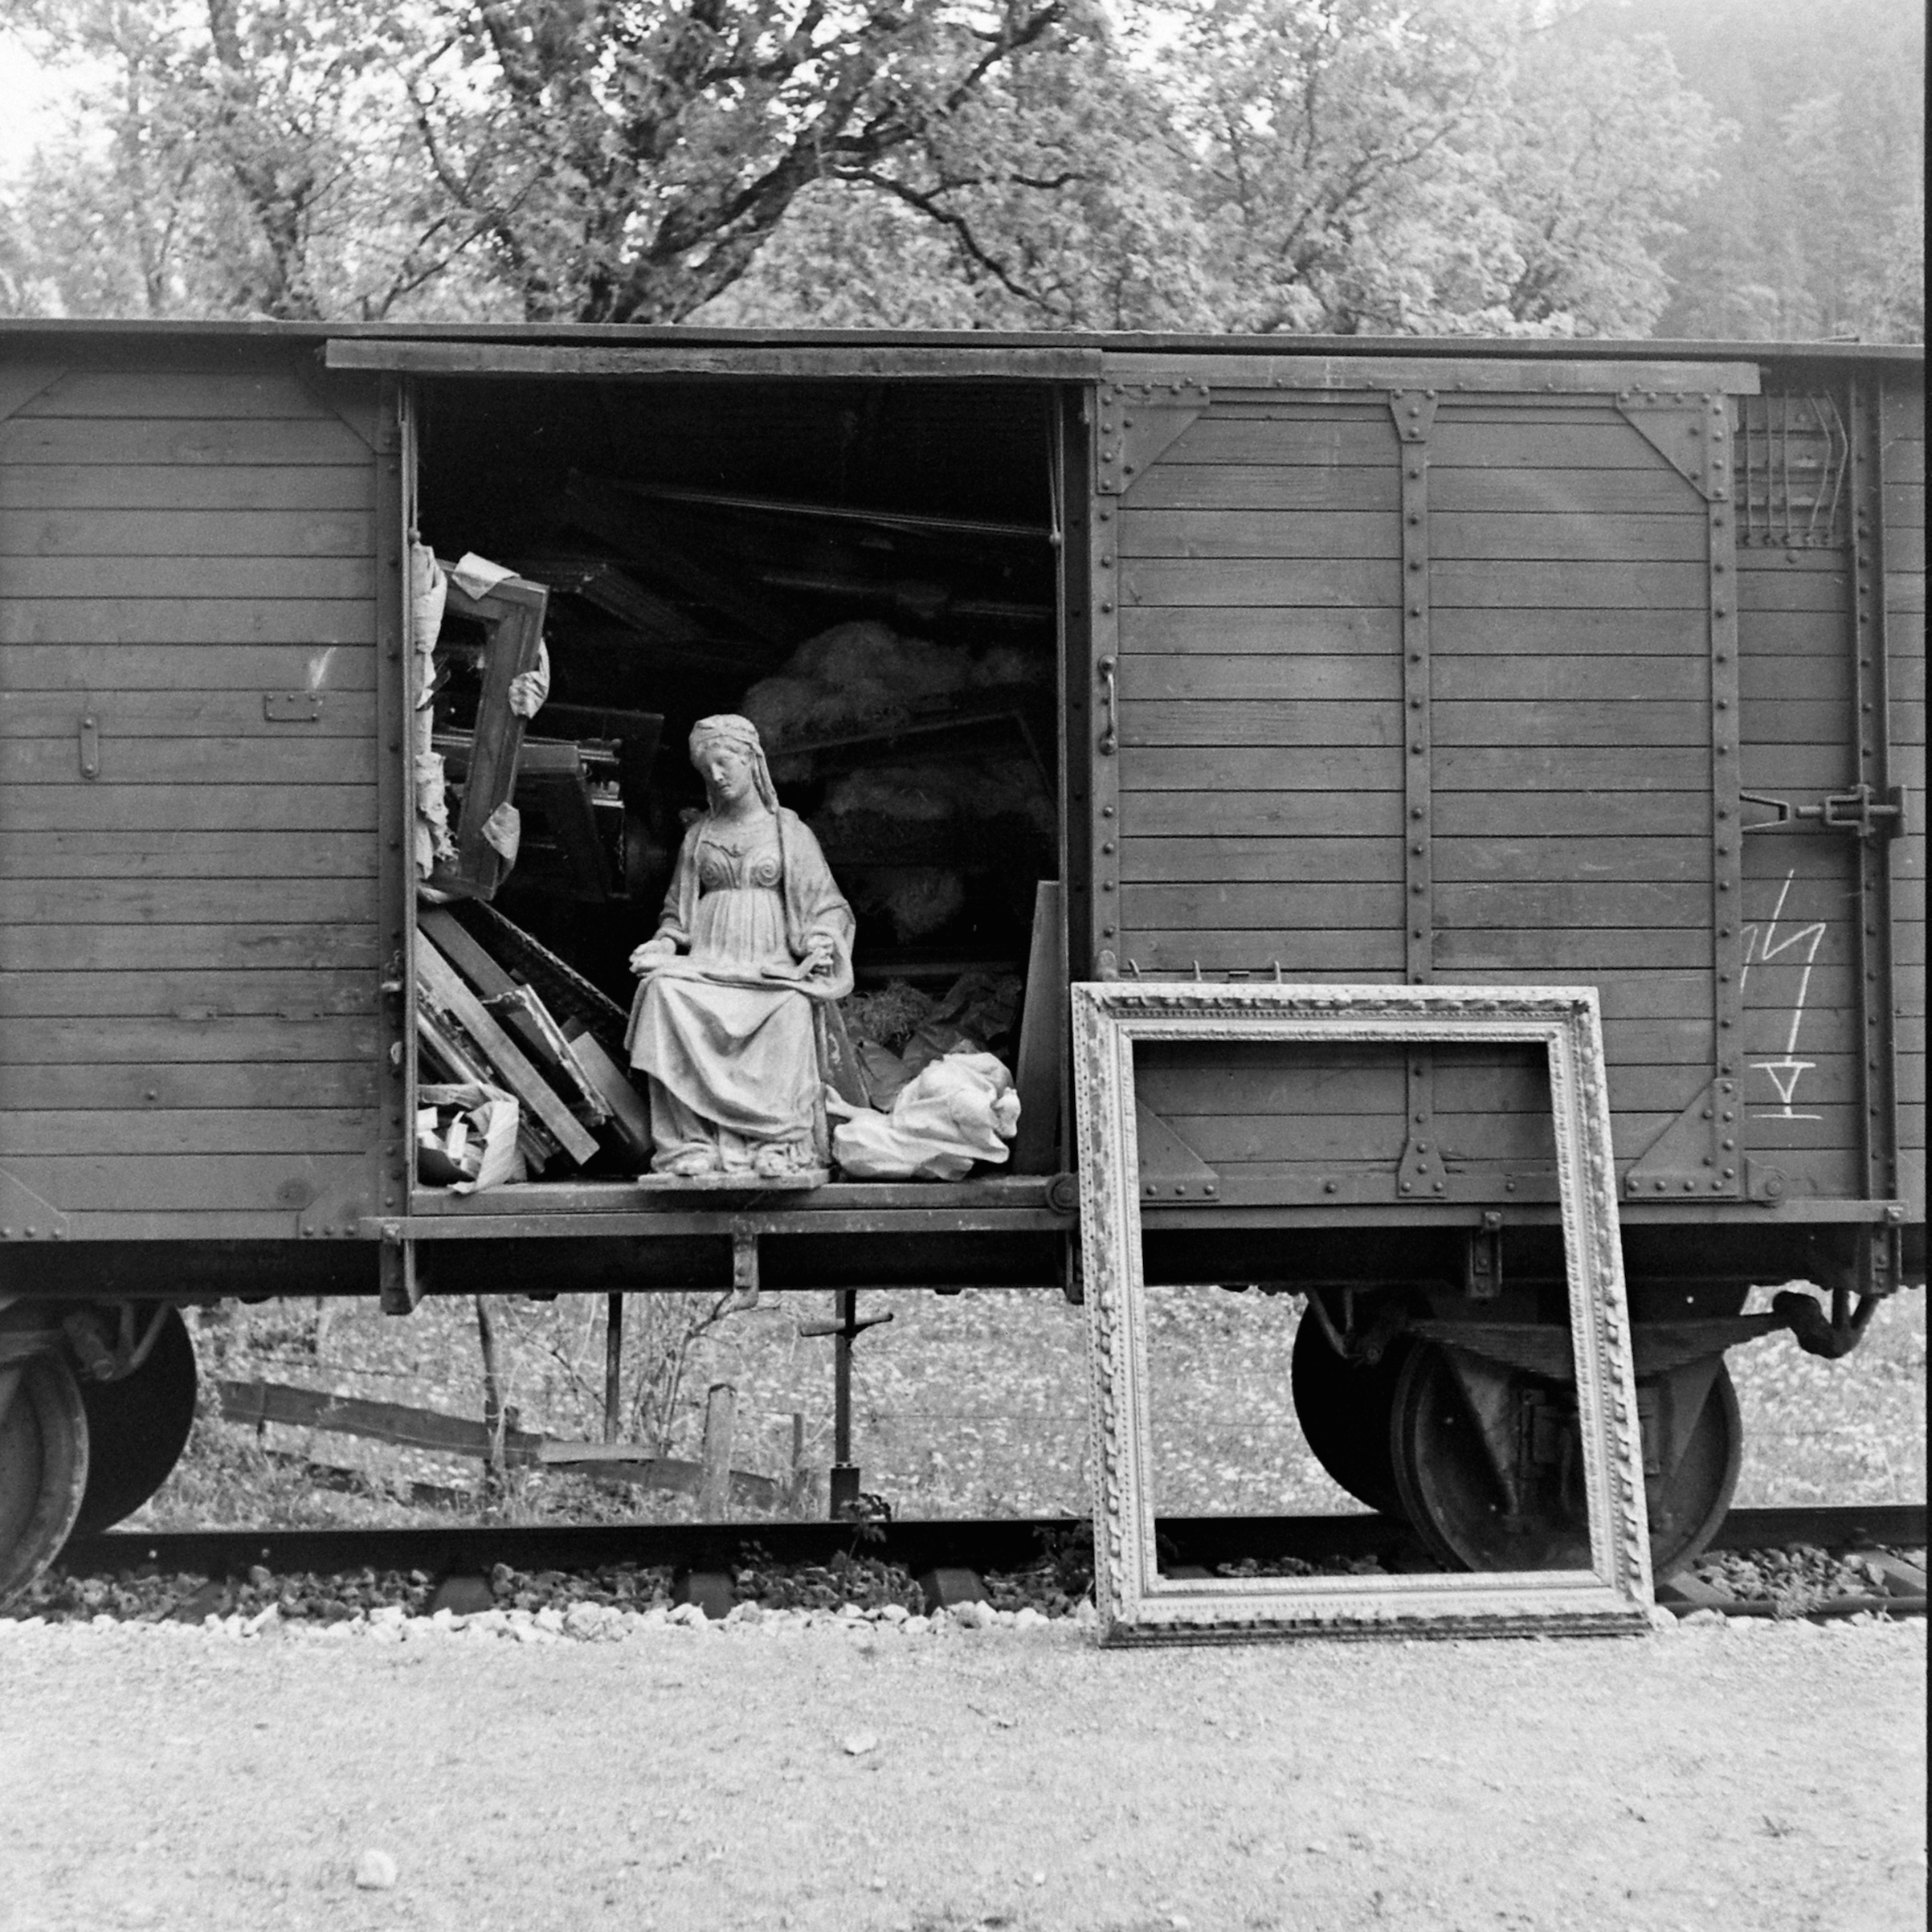 View of a train boxcar, through the open door of which can be seen some of the art collection looted by the Nazis, near Berchtesgaden, Germany, 1945.